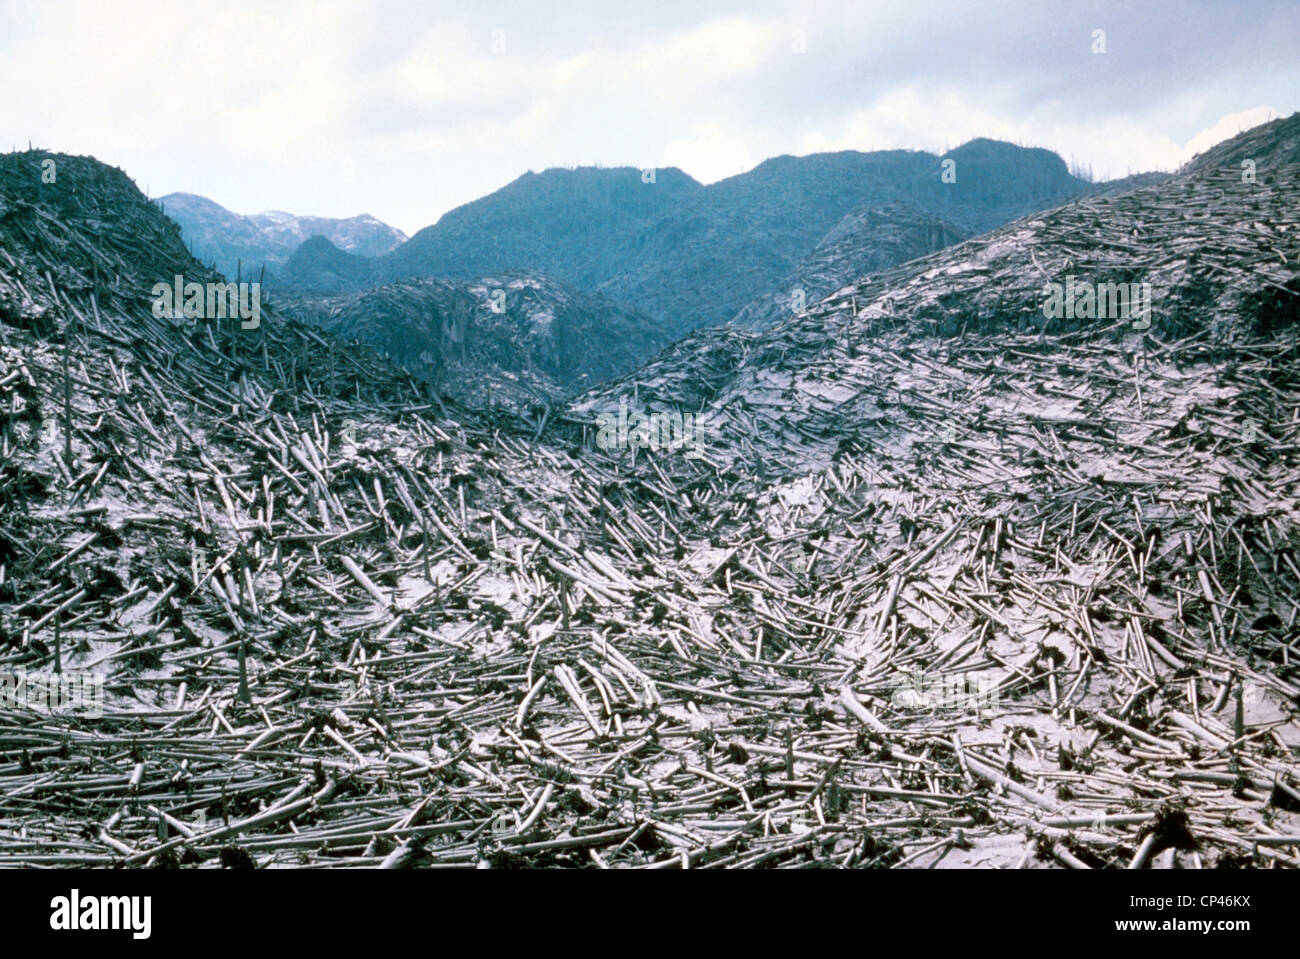 Timber destroyed by May 18 1981 eruption of Mount St. Helens. Trees within 19 miles from volcano were blown down. Stock Photo